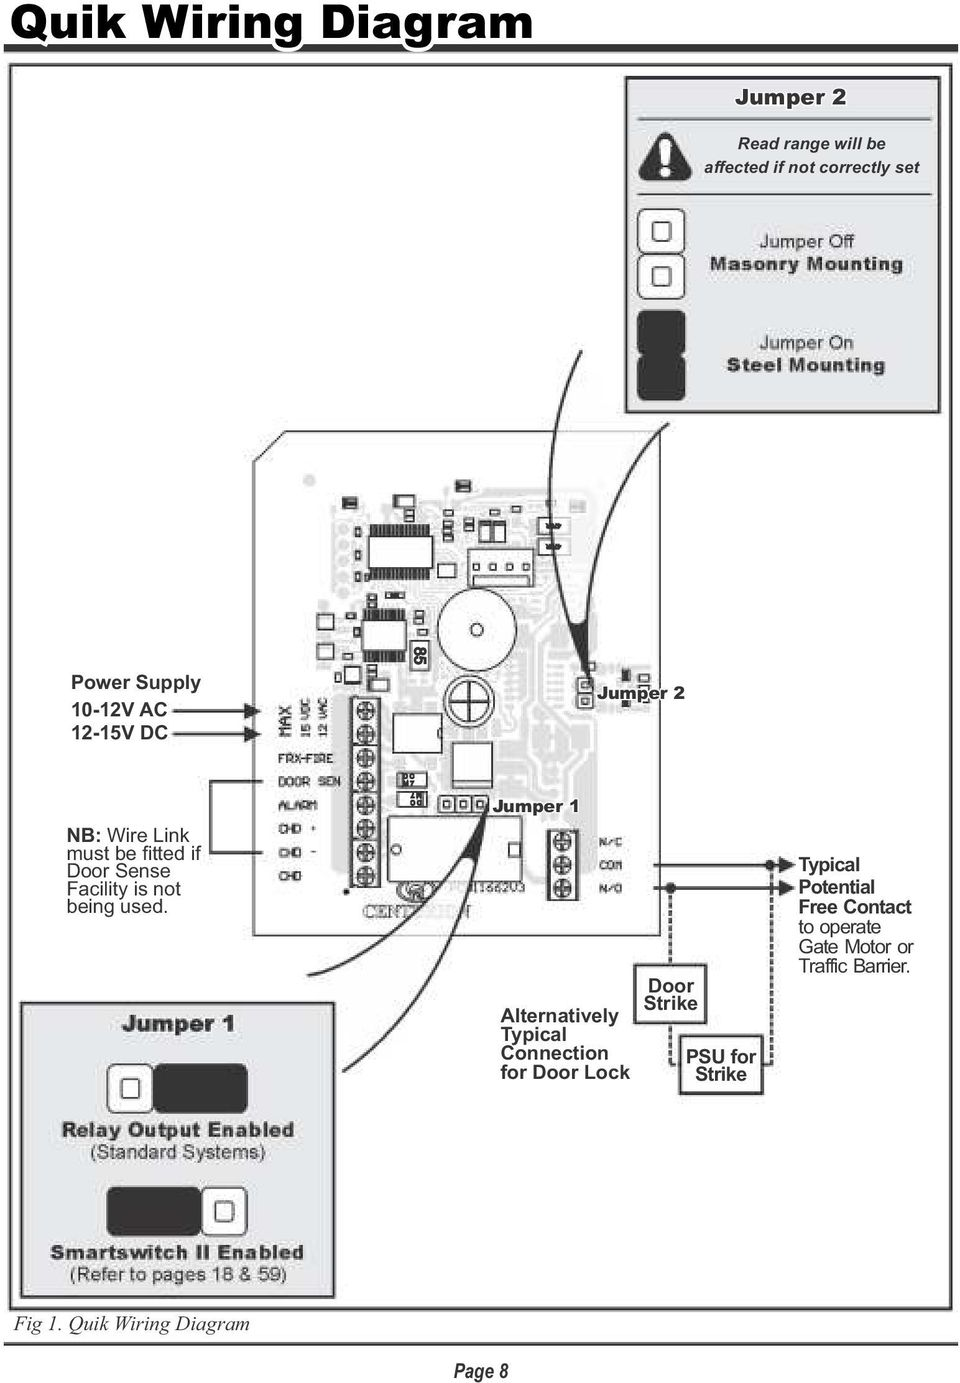 hight resolution of quik wiring diagram page 8 is not being used